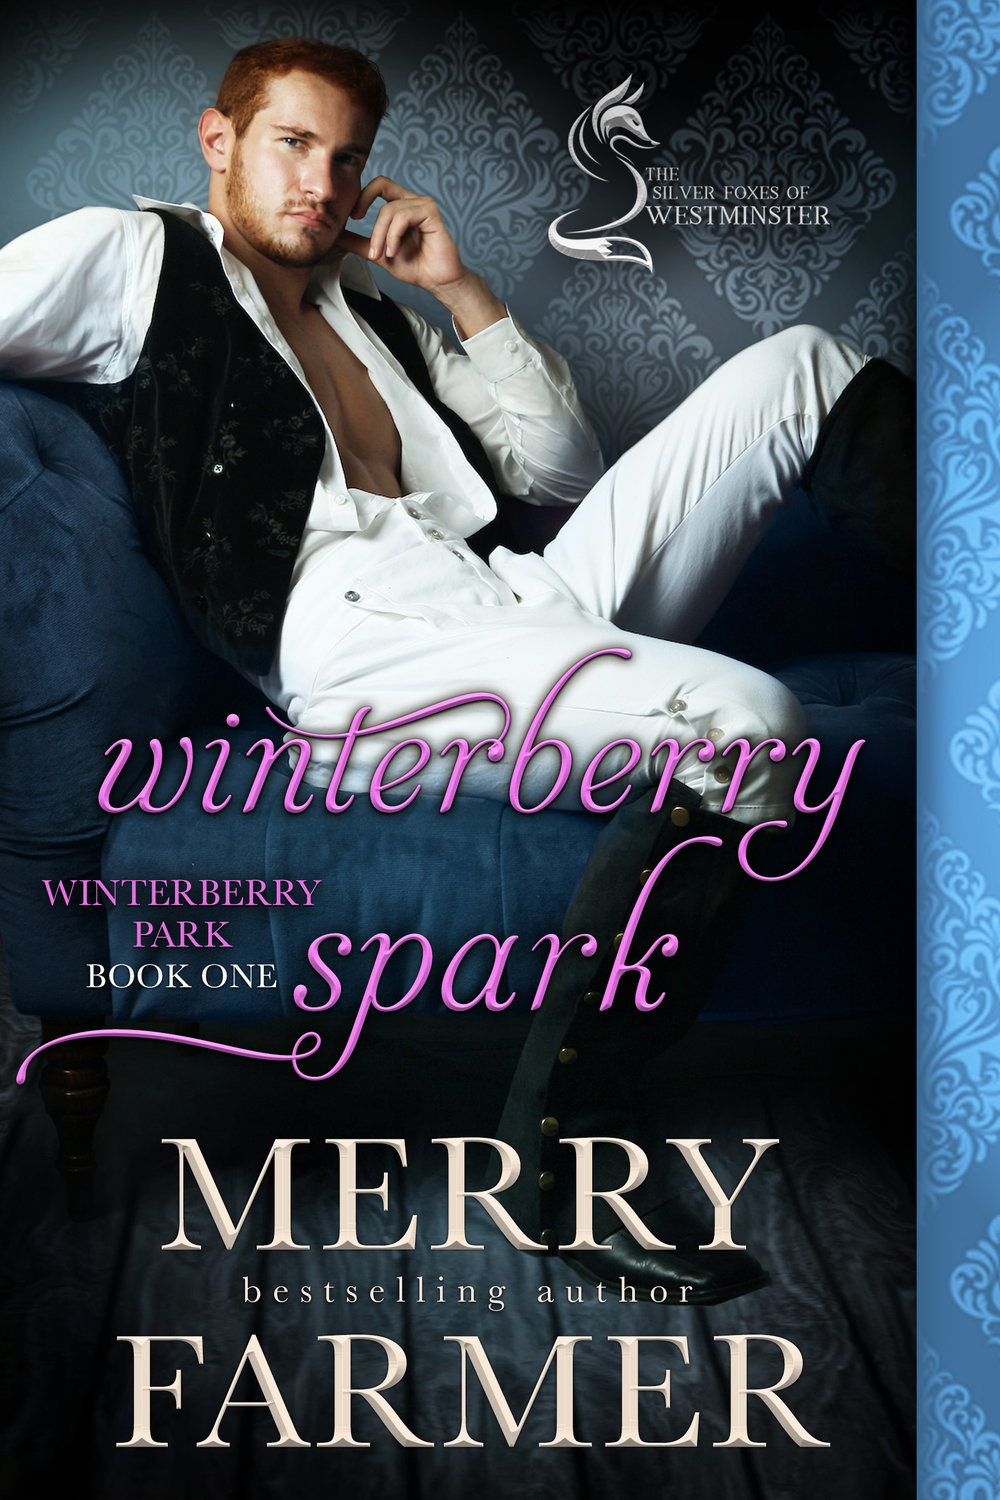 Winterberry Spark (Winterberry Park Book One) - Nursemaid Ruby Murdoch has lived the hardest of lives, but she's always managed to survive, even if it meant great sacrifice. But when the best thing that ever happened to her, being employed by Mr. Alexander Croydon as nursemaid for his son, James, ends up in jeopardy, she has no one to turn to…except the only man she'd ever truly loved, Mr. Croydon's man of business, Gilbert Phillips.Gil has also struggled against impossible odds to find his place in life. He fell in love with Ruby the moment he met her and was thrilled when the Croydons brought her into their protection. But after the catastrophic events that nearly tore the Croydon family apart, he isn't sure if he can find it in his heart to forgive her. His head and his heart are constantly at war.Until Gil is faced with the possibility of losing Ruby forever. When love is pushed to its limit, only the powers of forgiveness and understanding can lift these lovers above the unfairness of the world and into each other's arms.PLEASE BE ADVISED: Steam Level – Very HotWinterberry Spark is connected to the full-length novel AUGUST SUNRISE